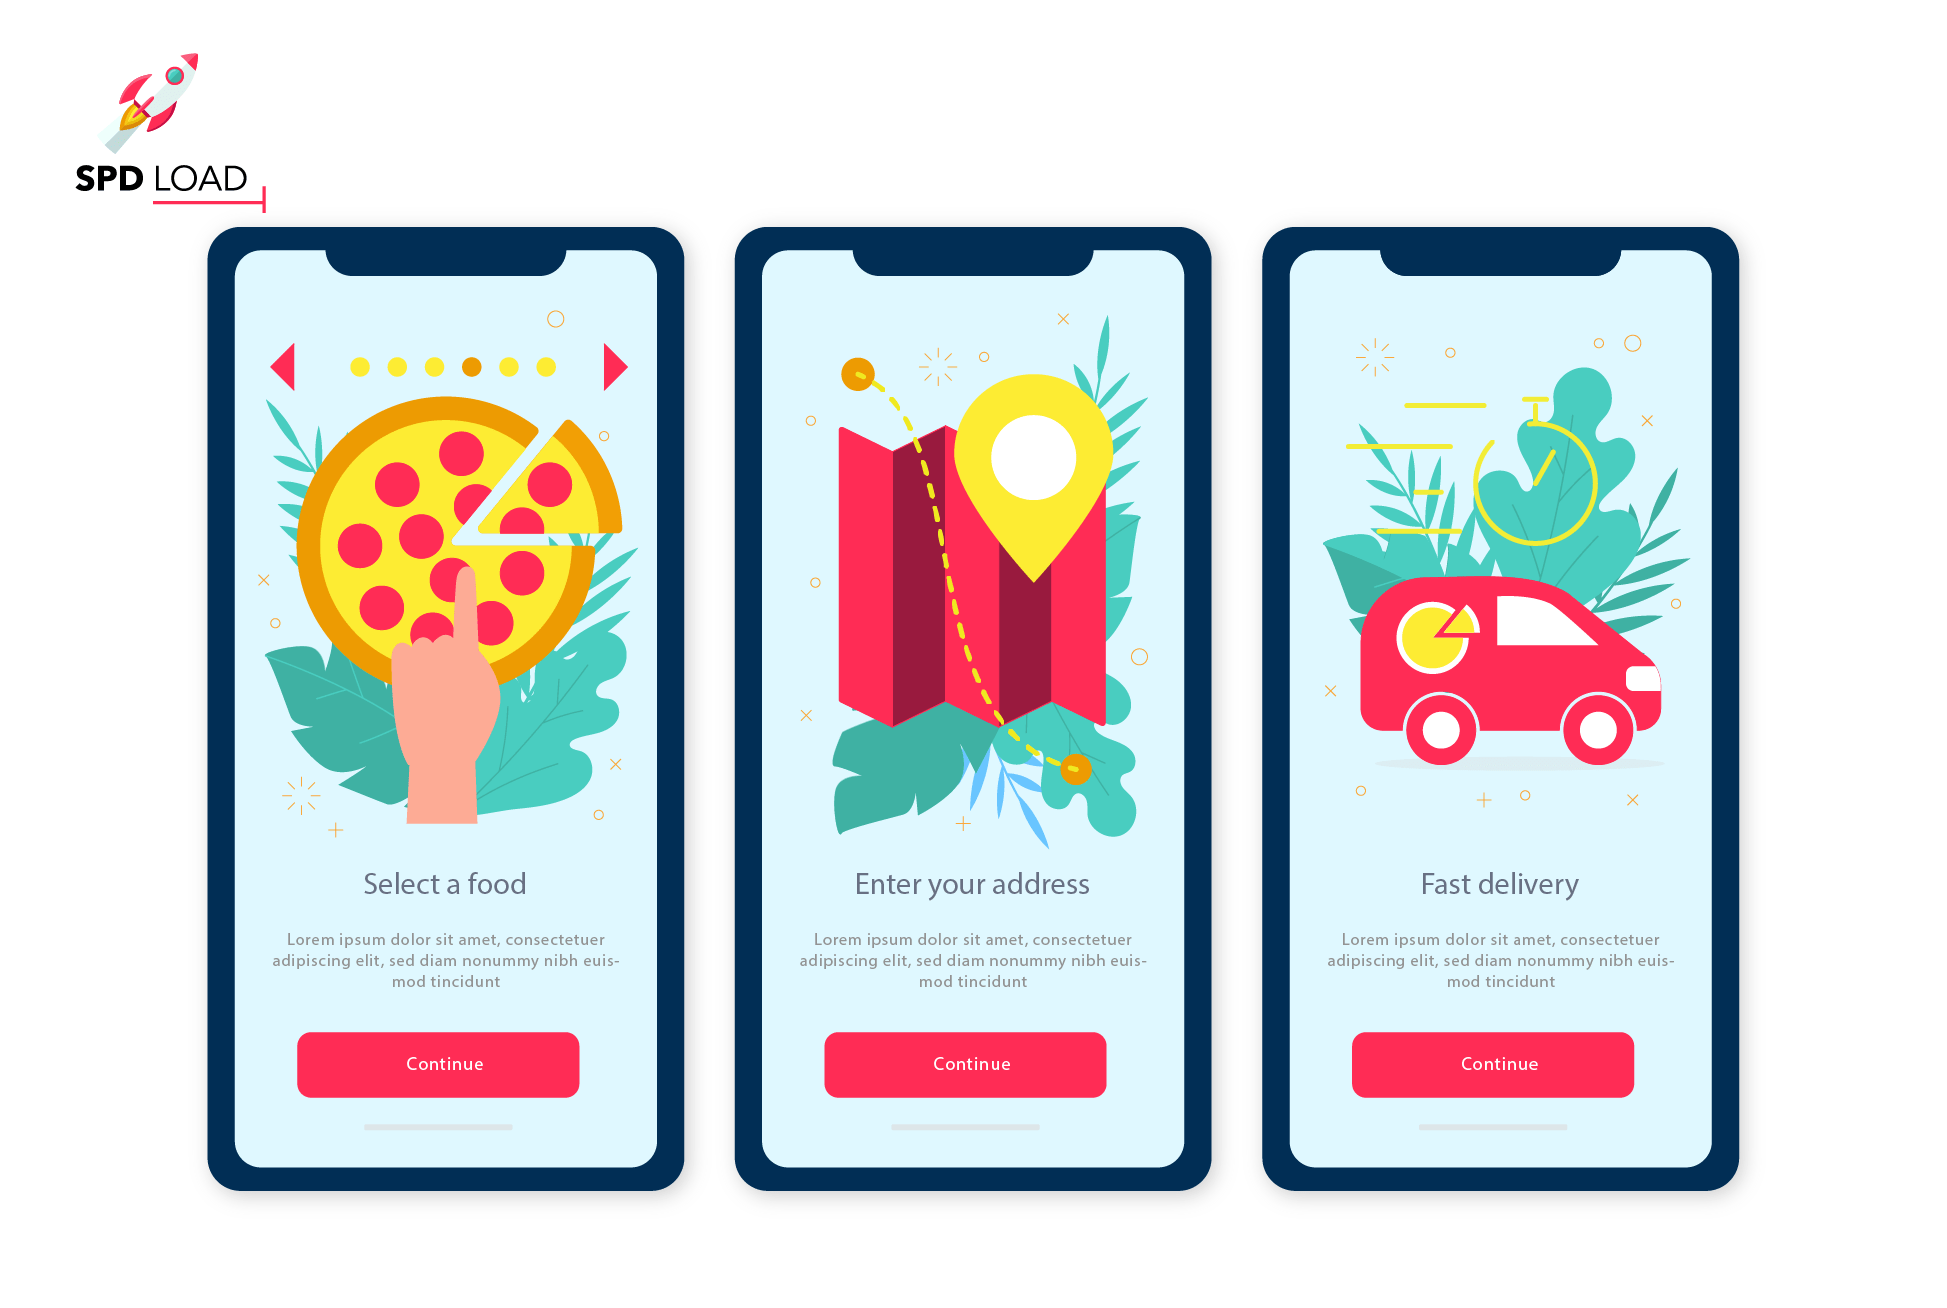 Check out detailed step-by-step guide on how to create a food ordering app by SpdLoad